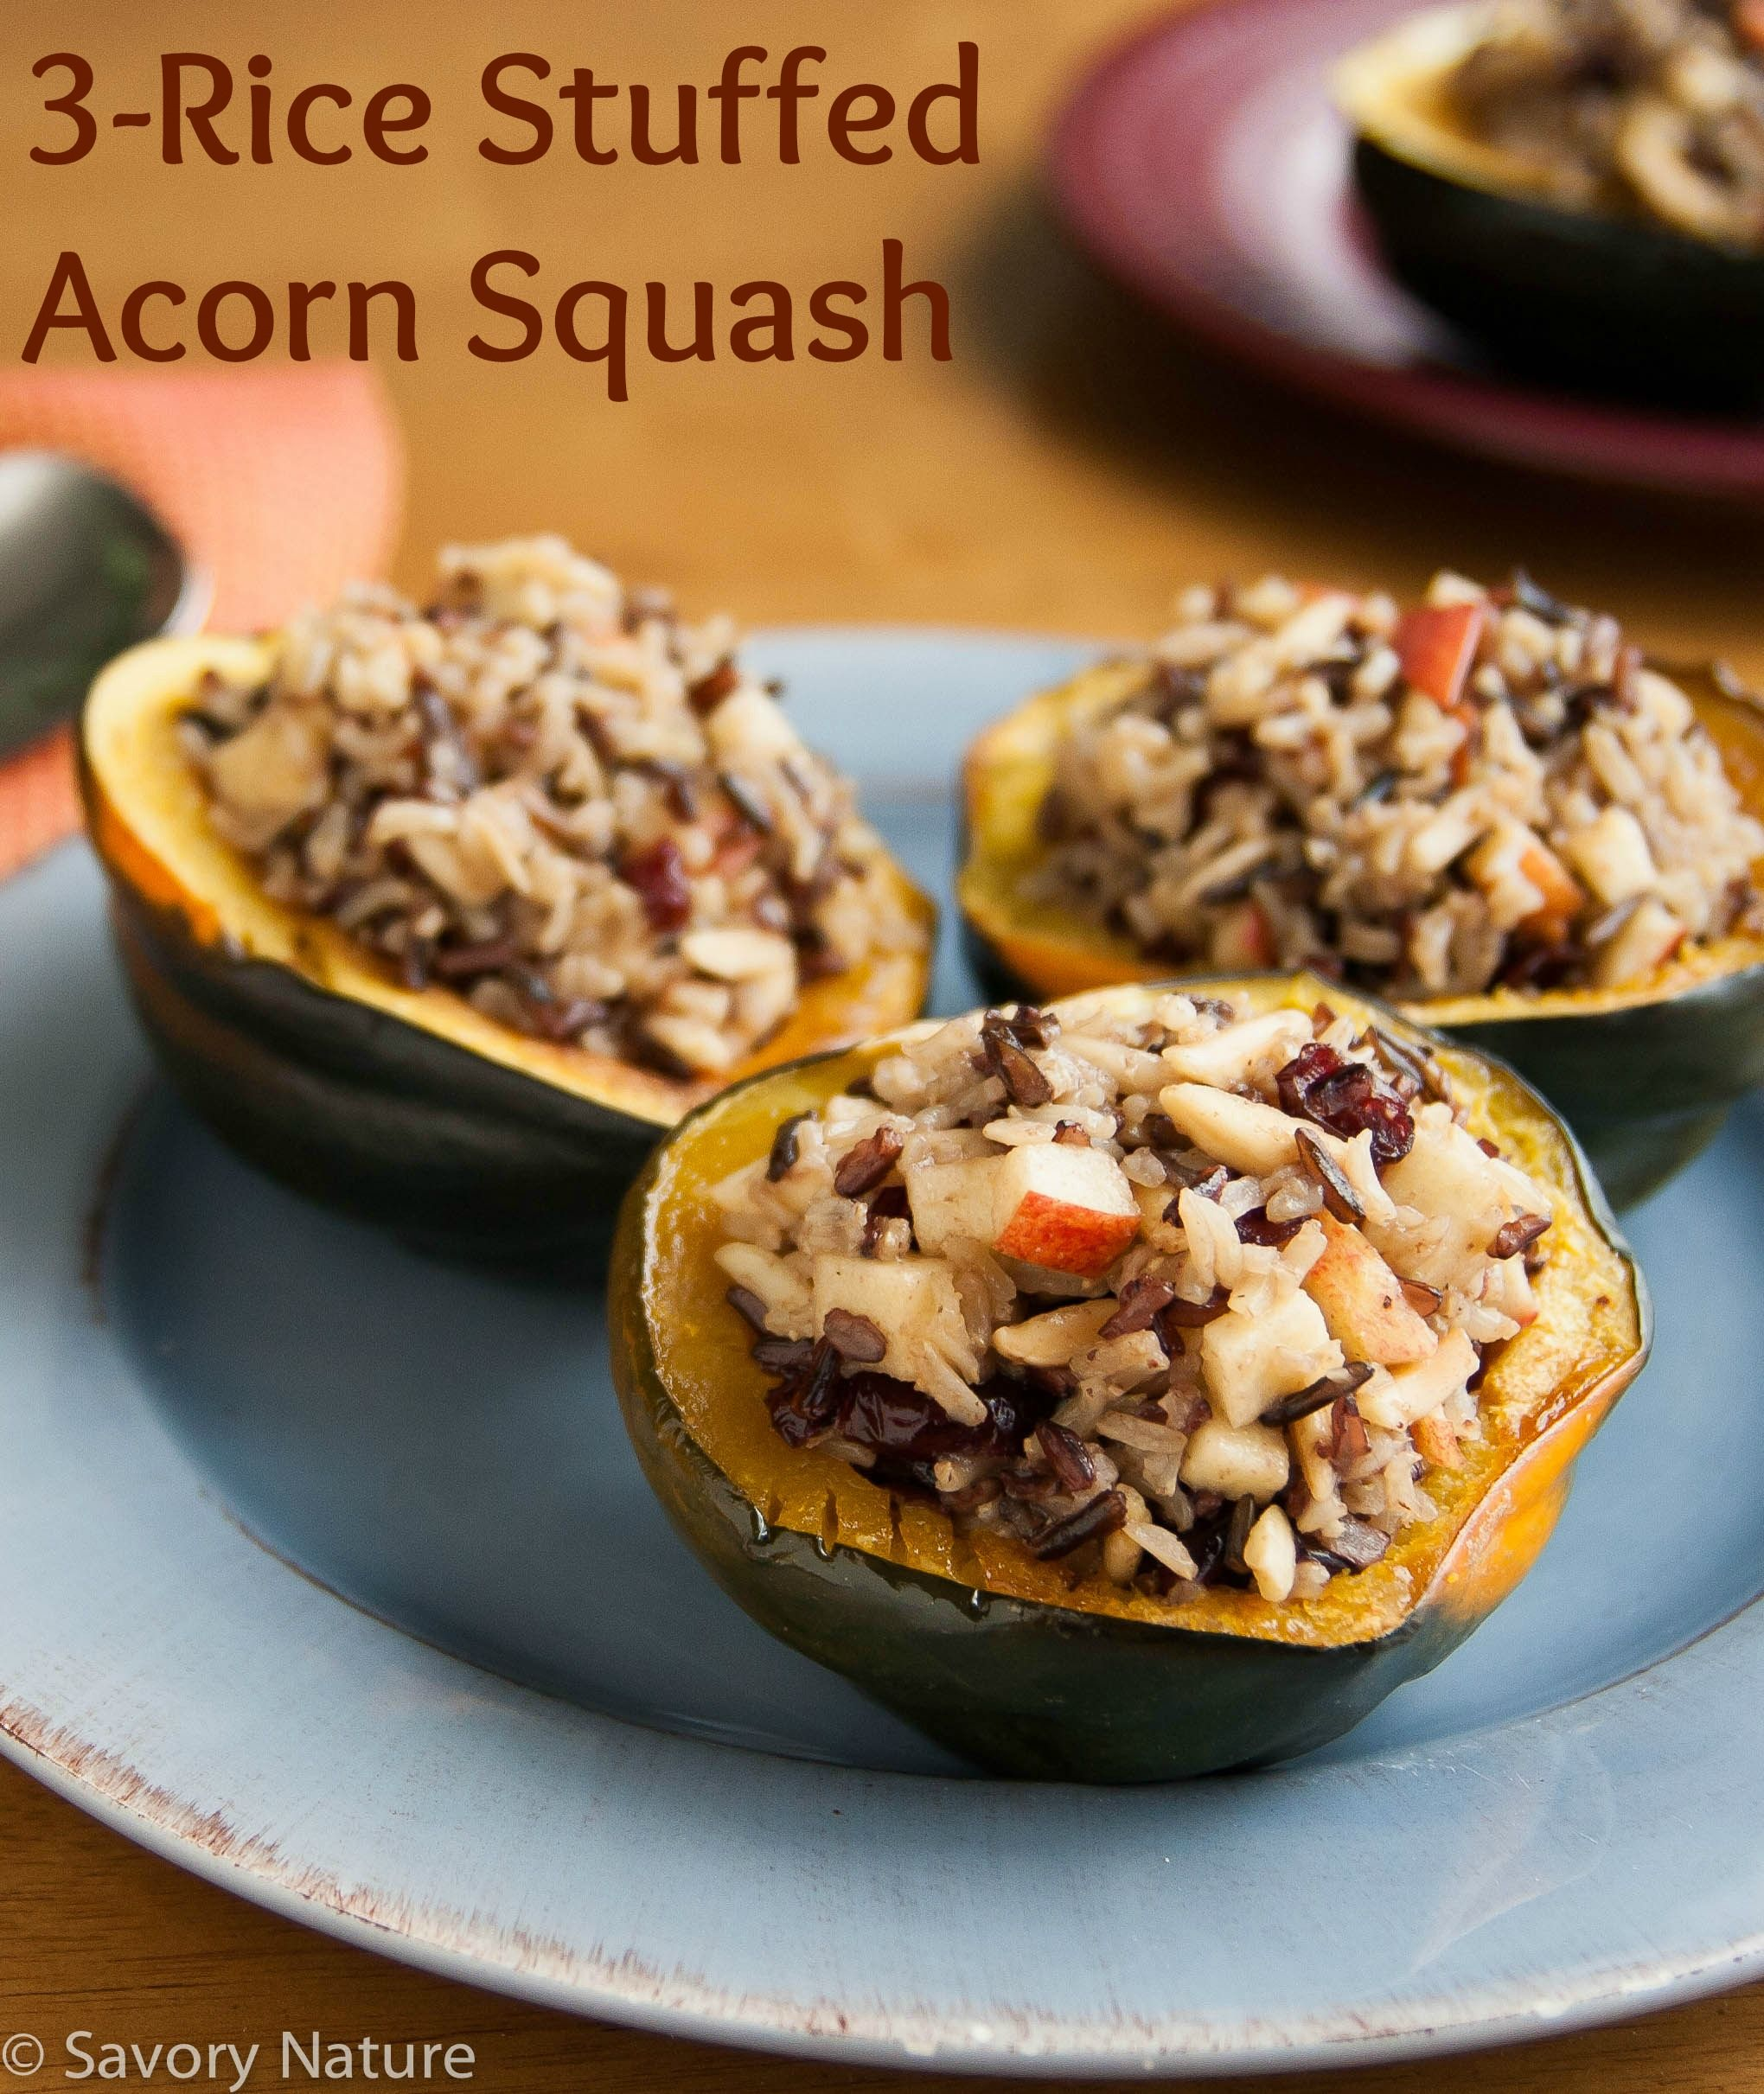 Three Rice Stuffed Acorn Squash - with a nutty, creamy, chewy mix of black, wild and brown basmati rices plus almonds, dried cranberries and apple sweetened with a little maple syrup - yummy and elegant!